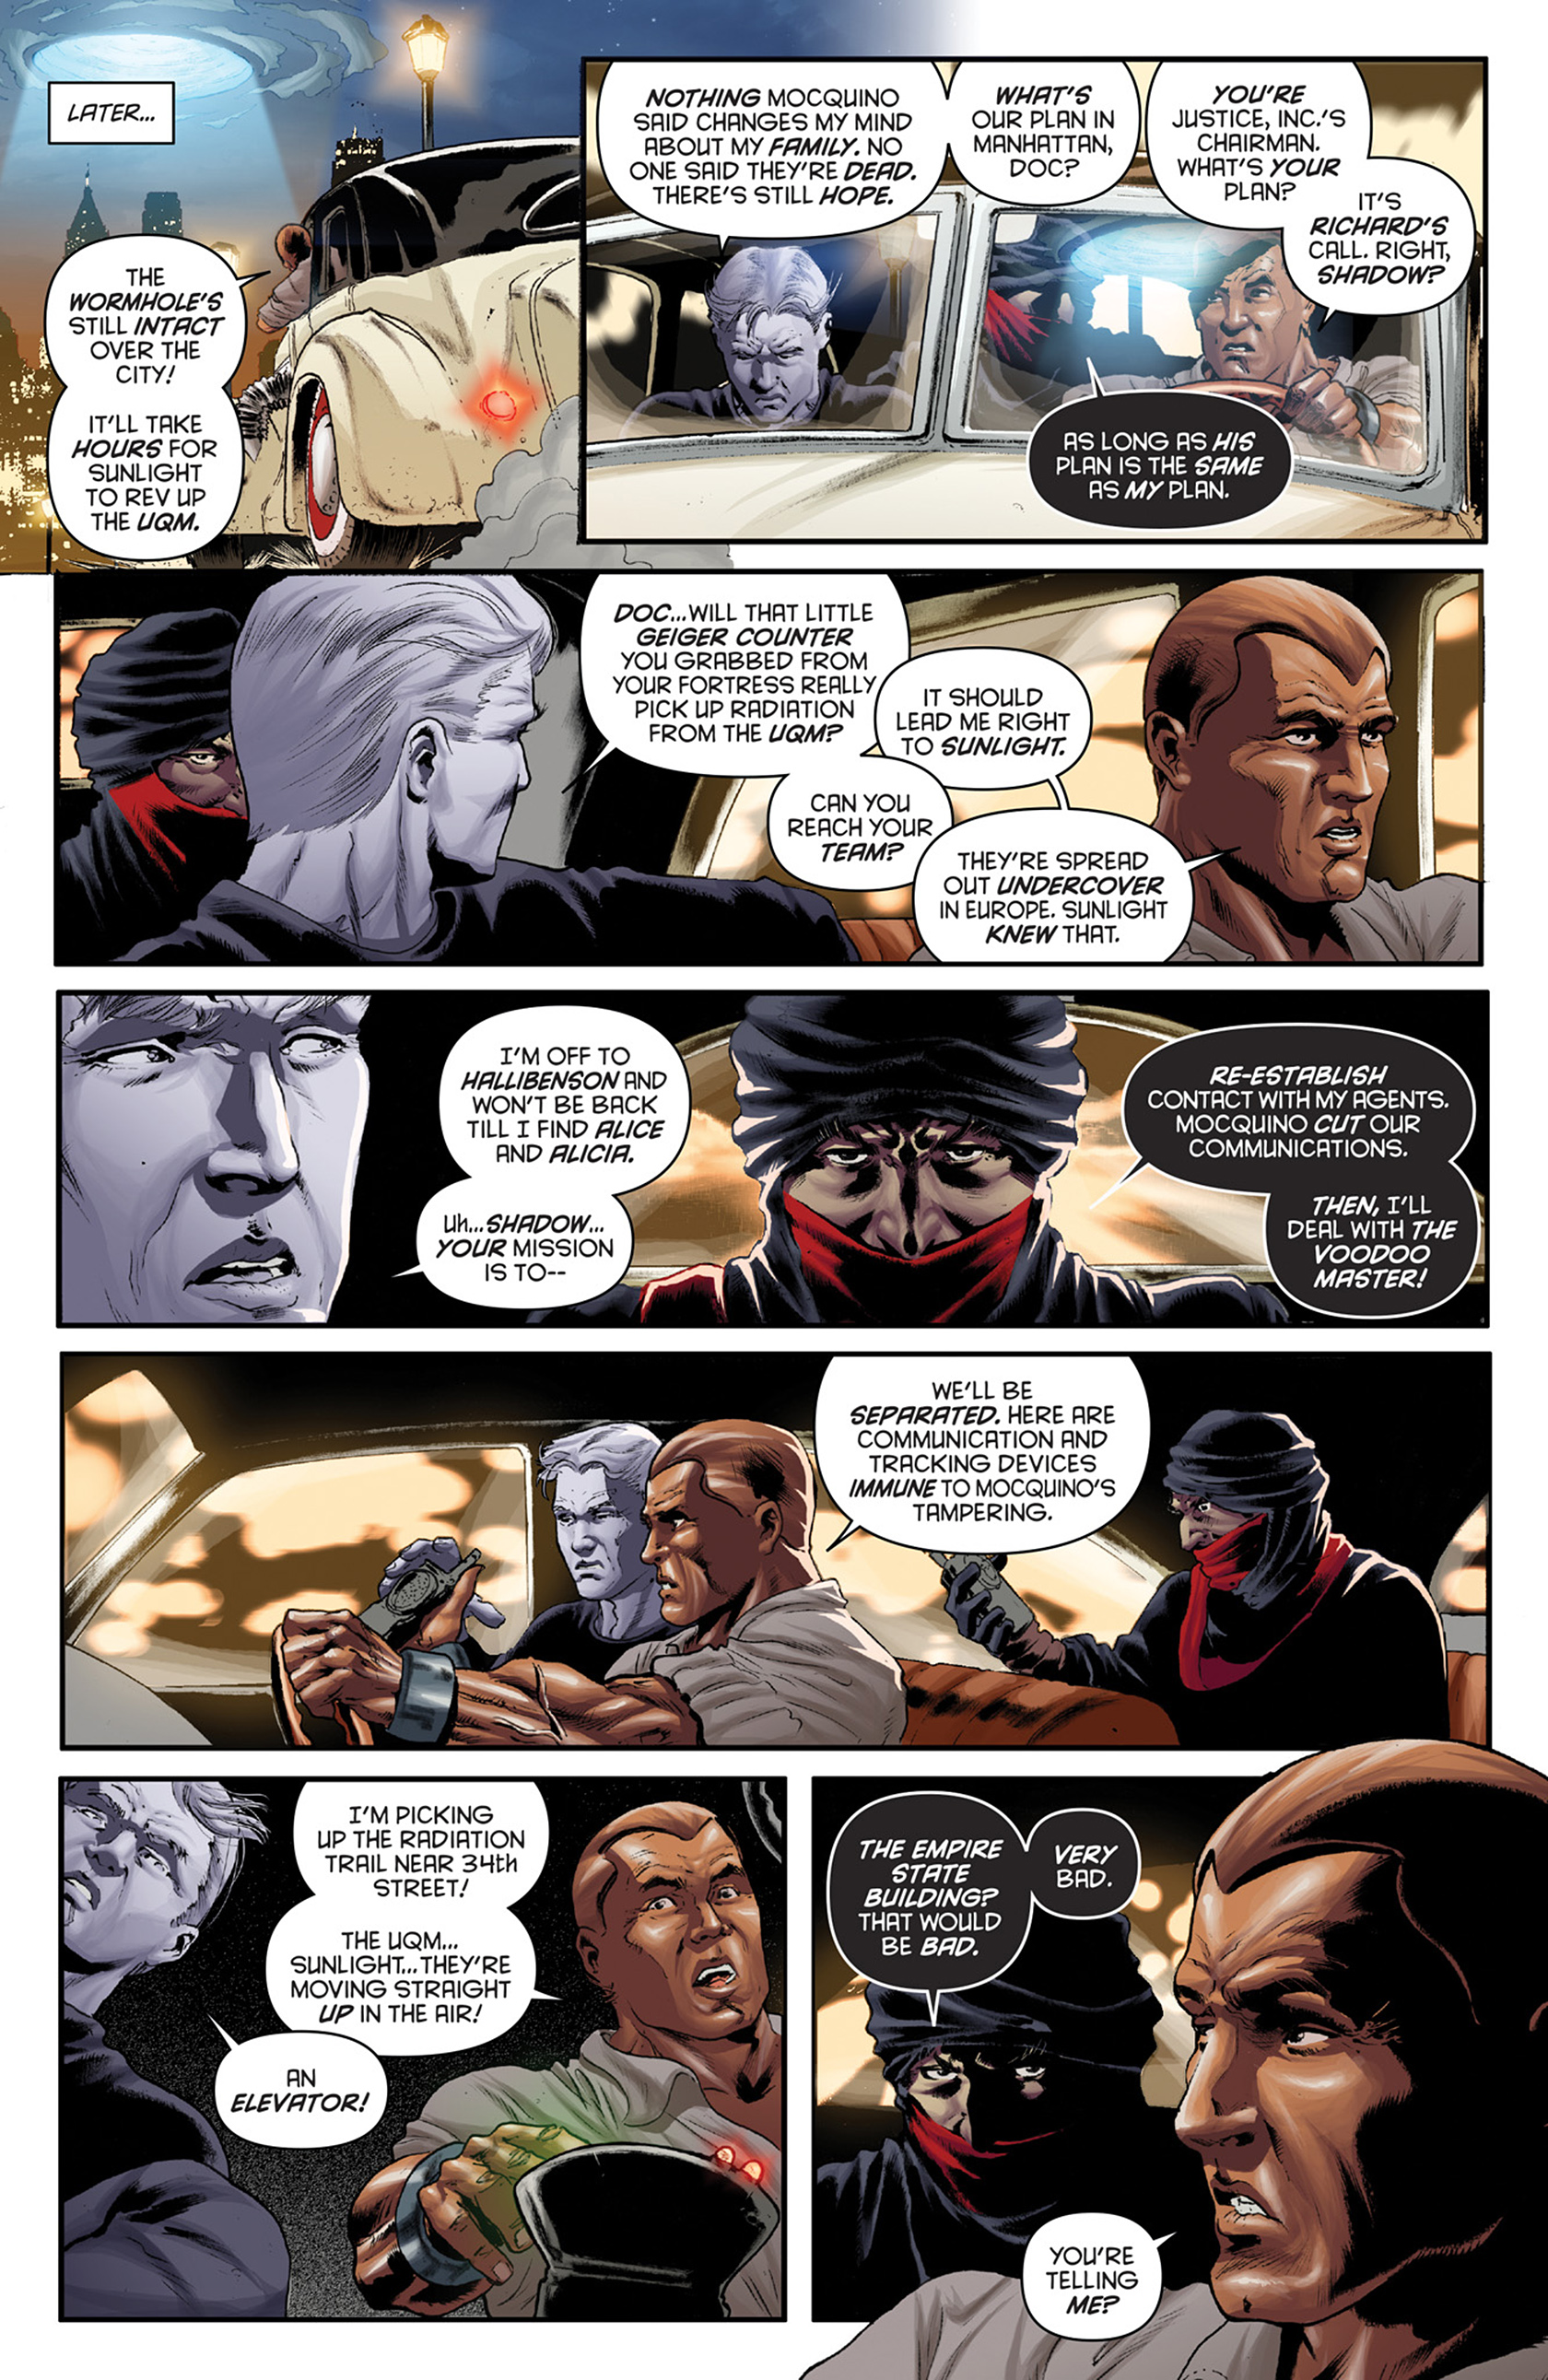 Read online Justice, Inc. comic -  Issue #4 - 19